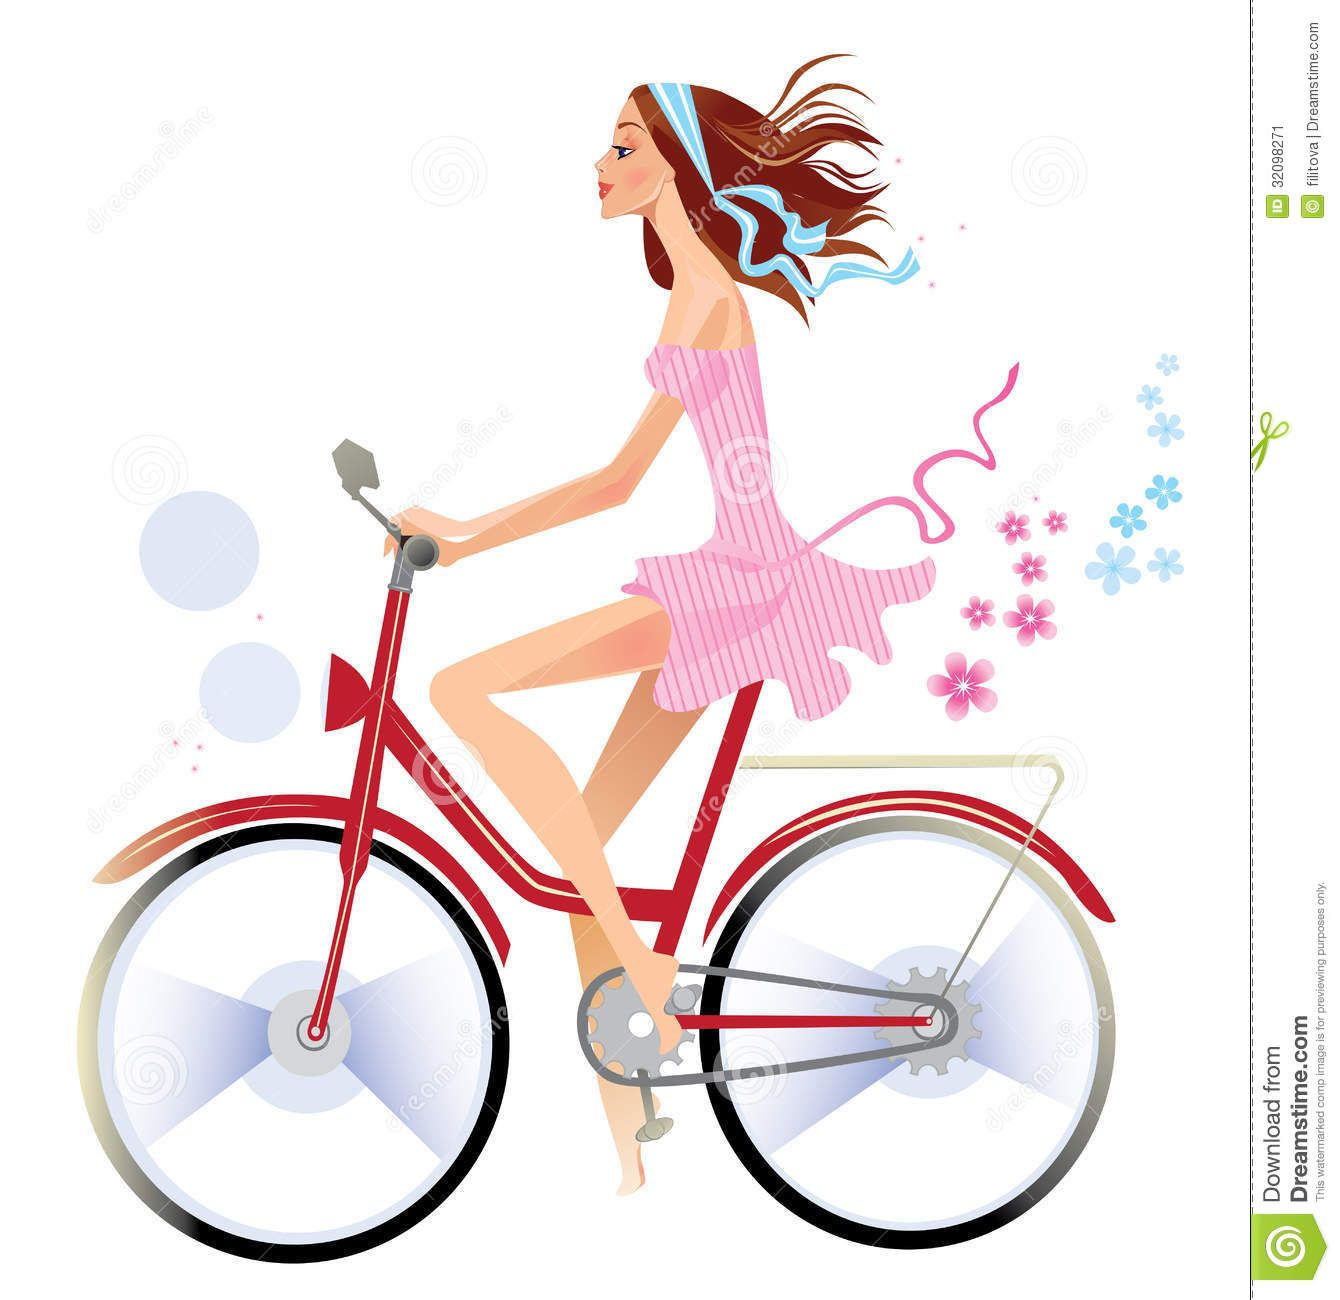 girl on bicycle business cards - Google Search | Art: DeSiGns ...